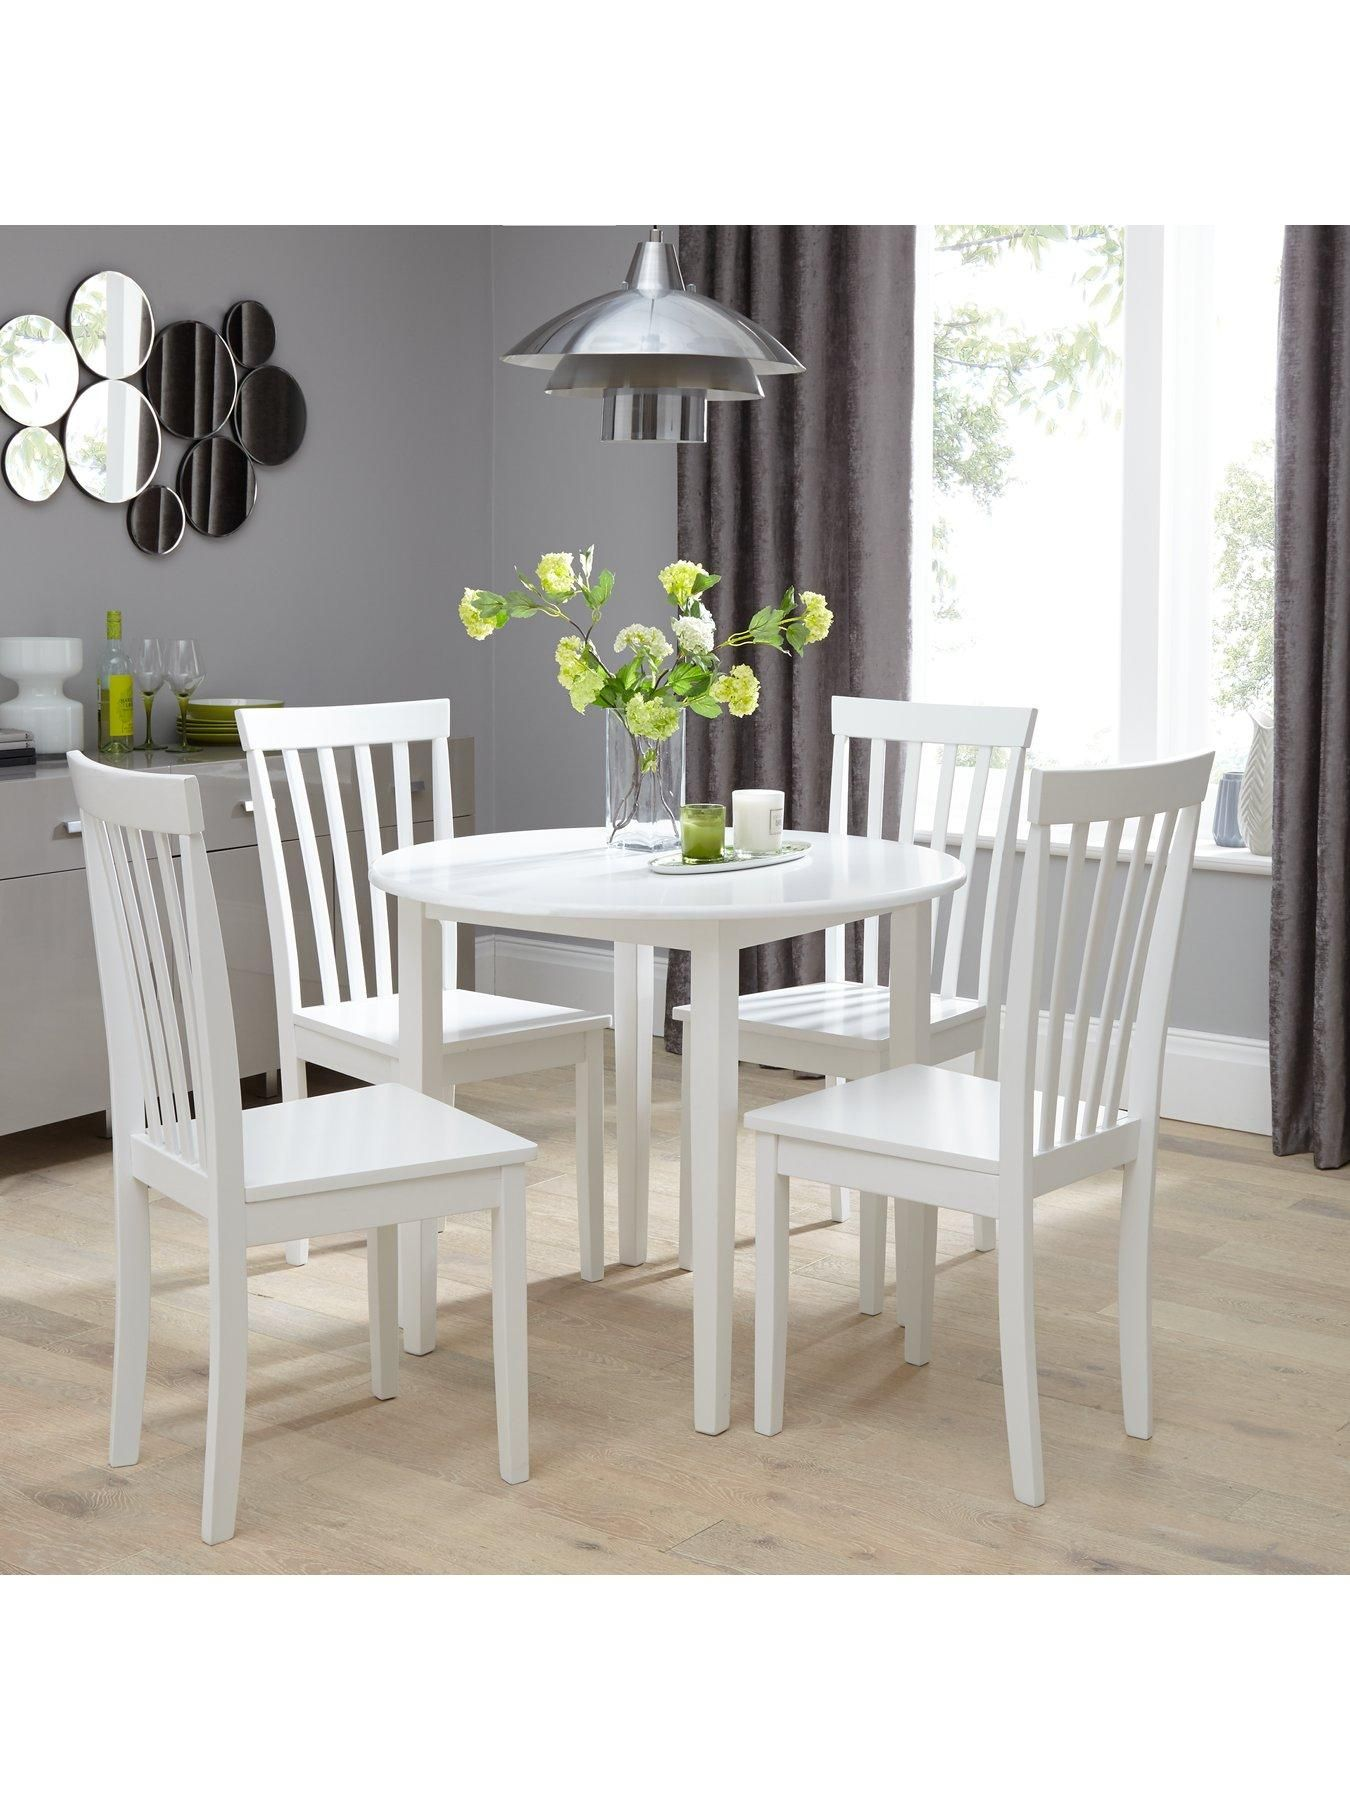 Sophia 90 Cm Round Dining Table 4 Chairs White Kitchen